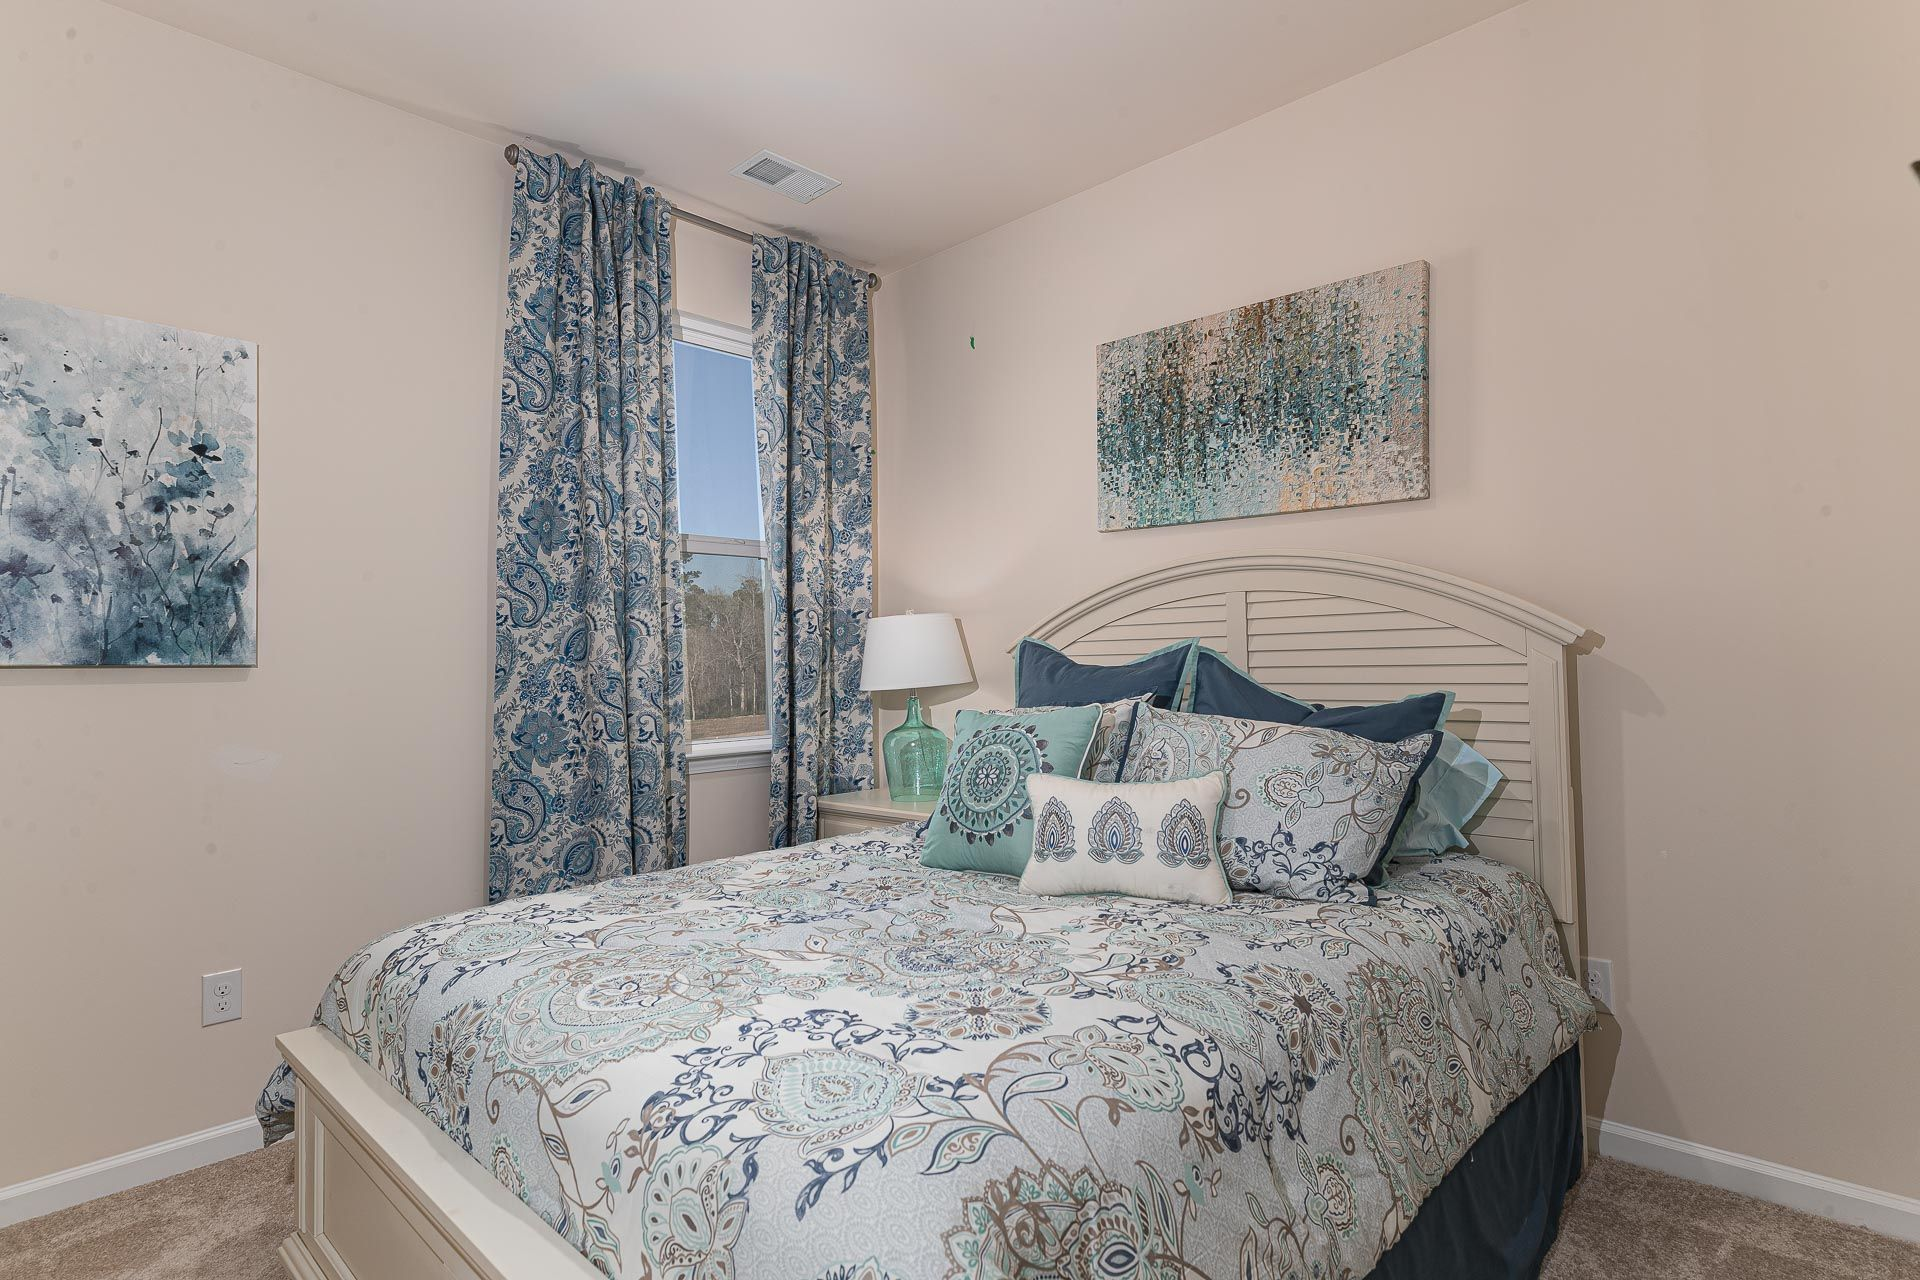 Bedroom featured in the CALI By D.R. Horton in Myrtle Beach, SC